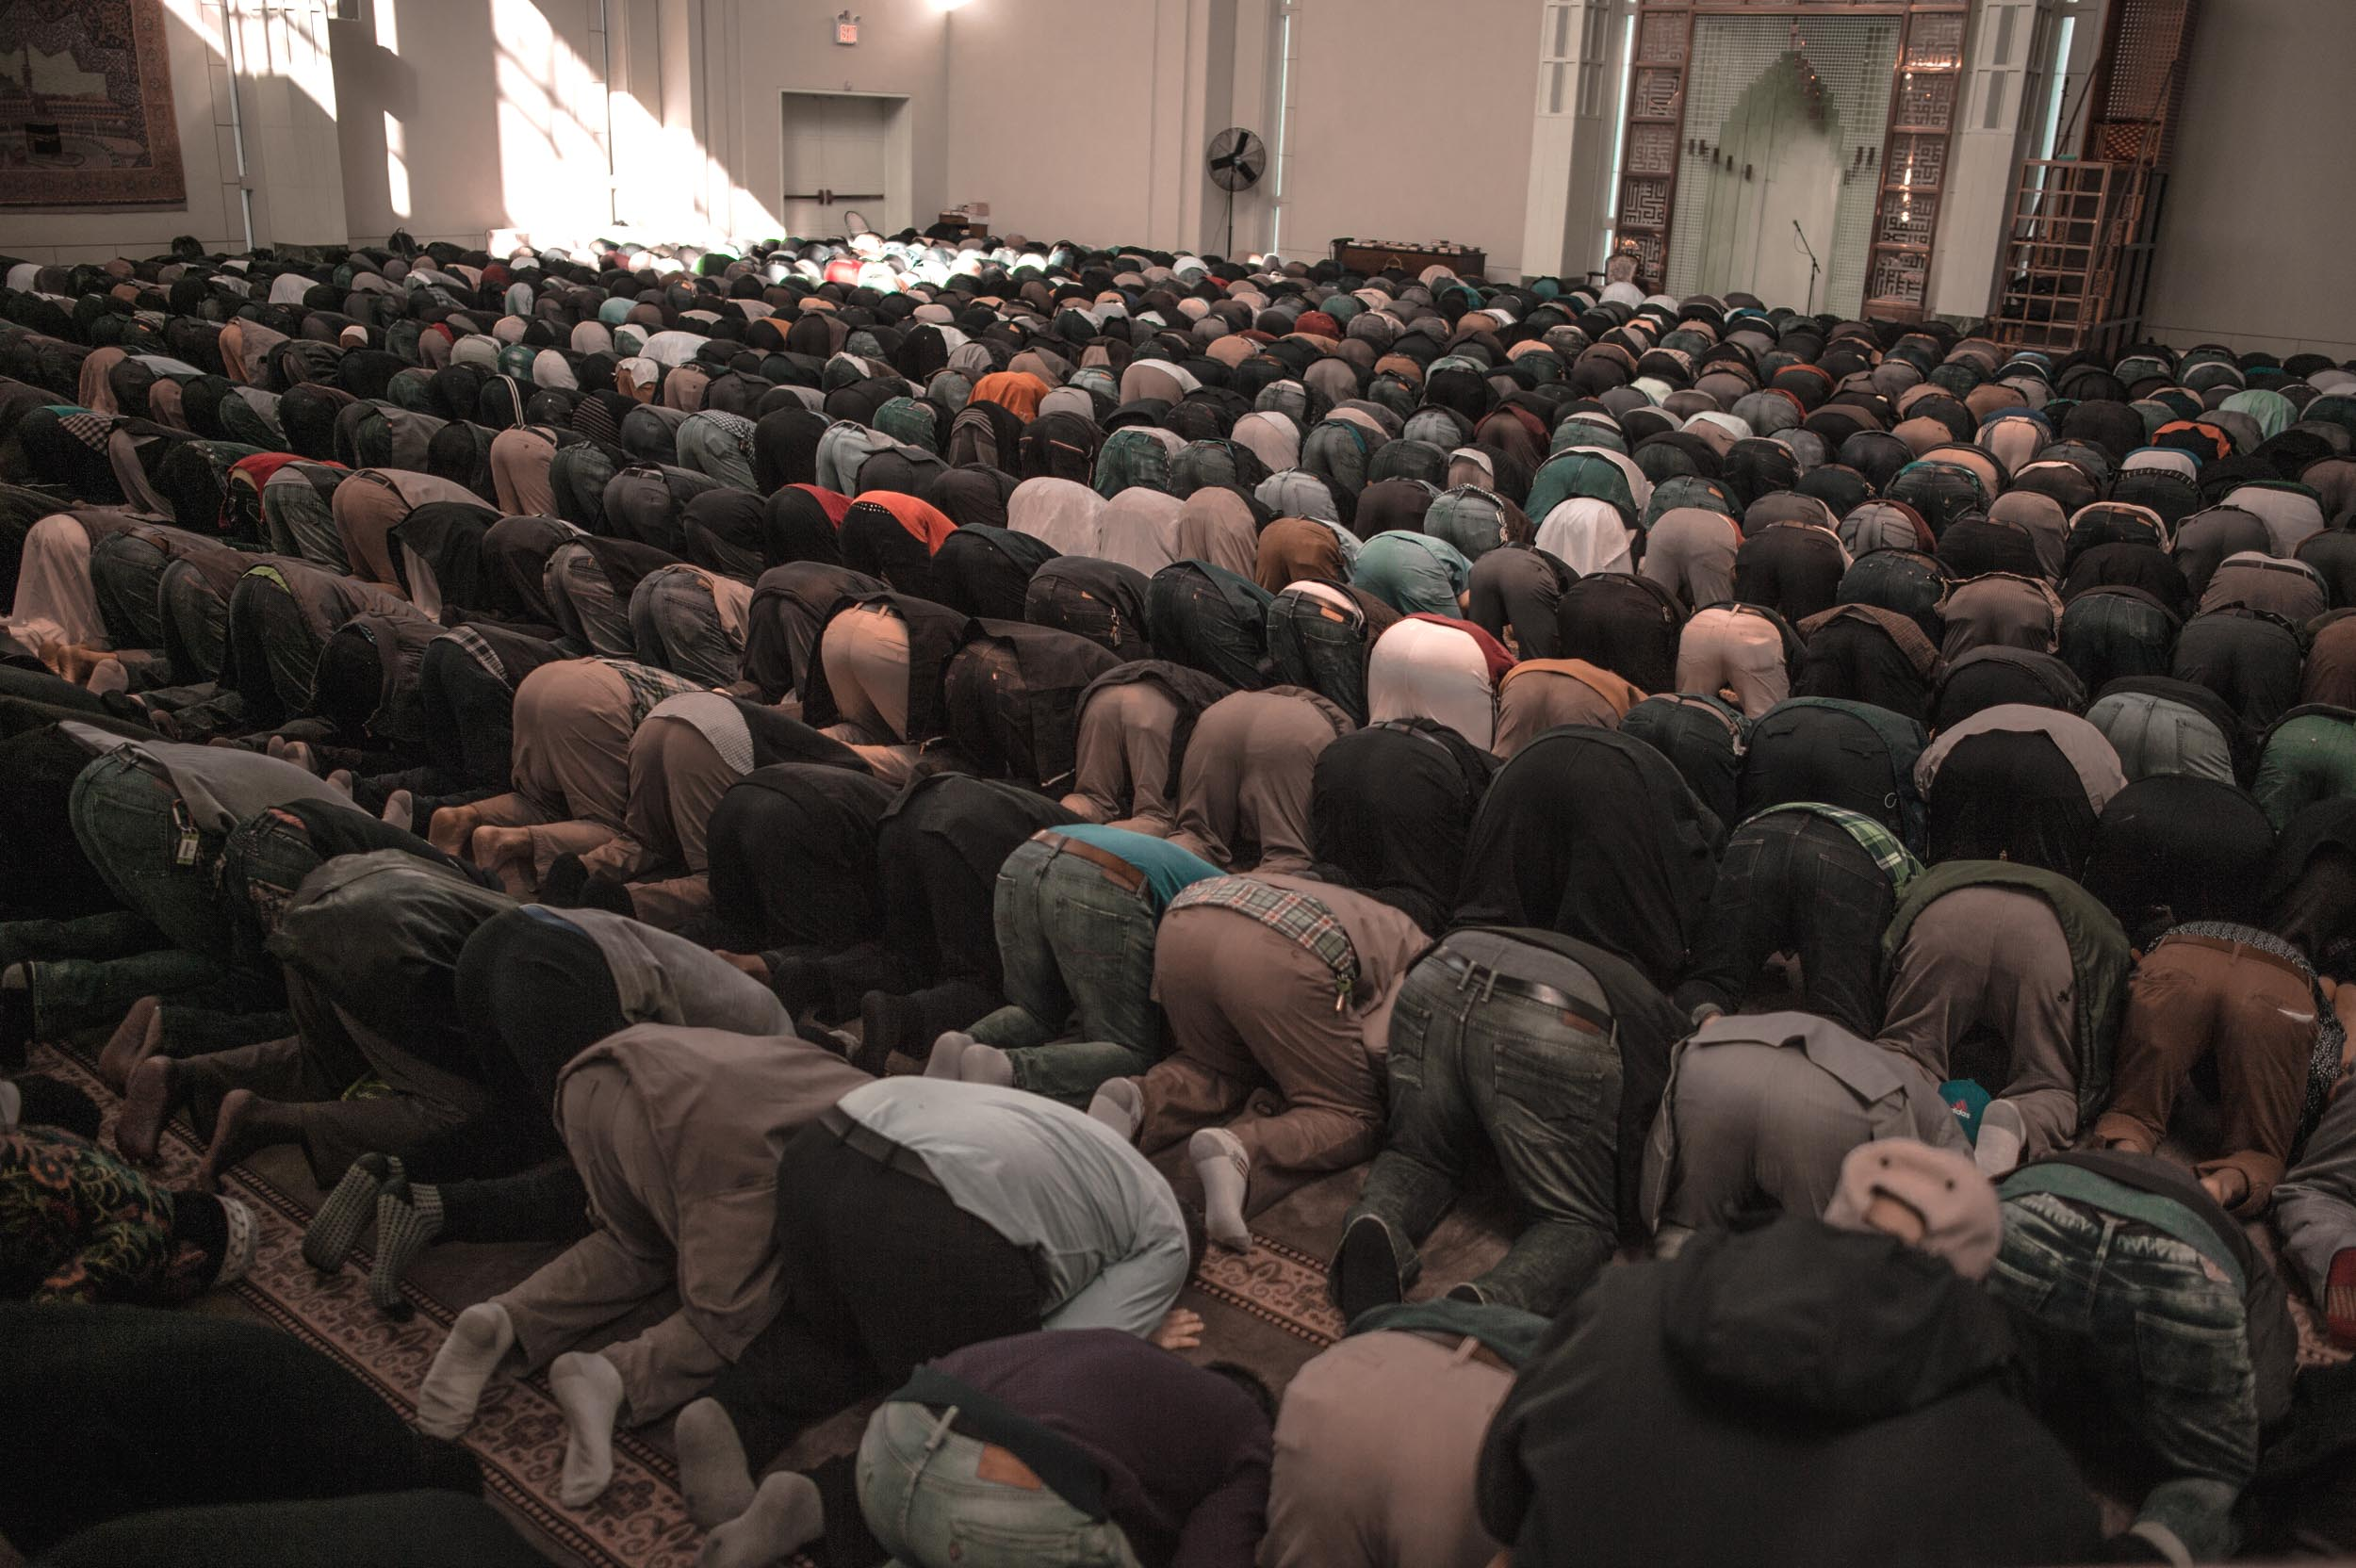 The Jumu'ah, or Friday Prayer, at the 92nd Street Mosque in Manhattan—lead by  Imam Elbaktrawish .